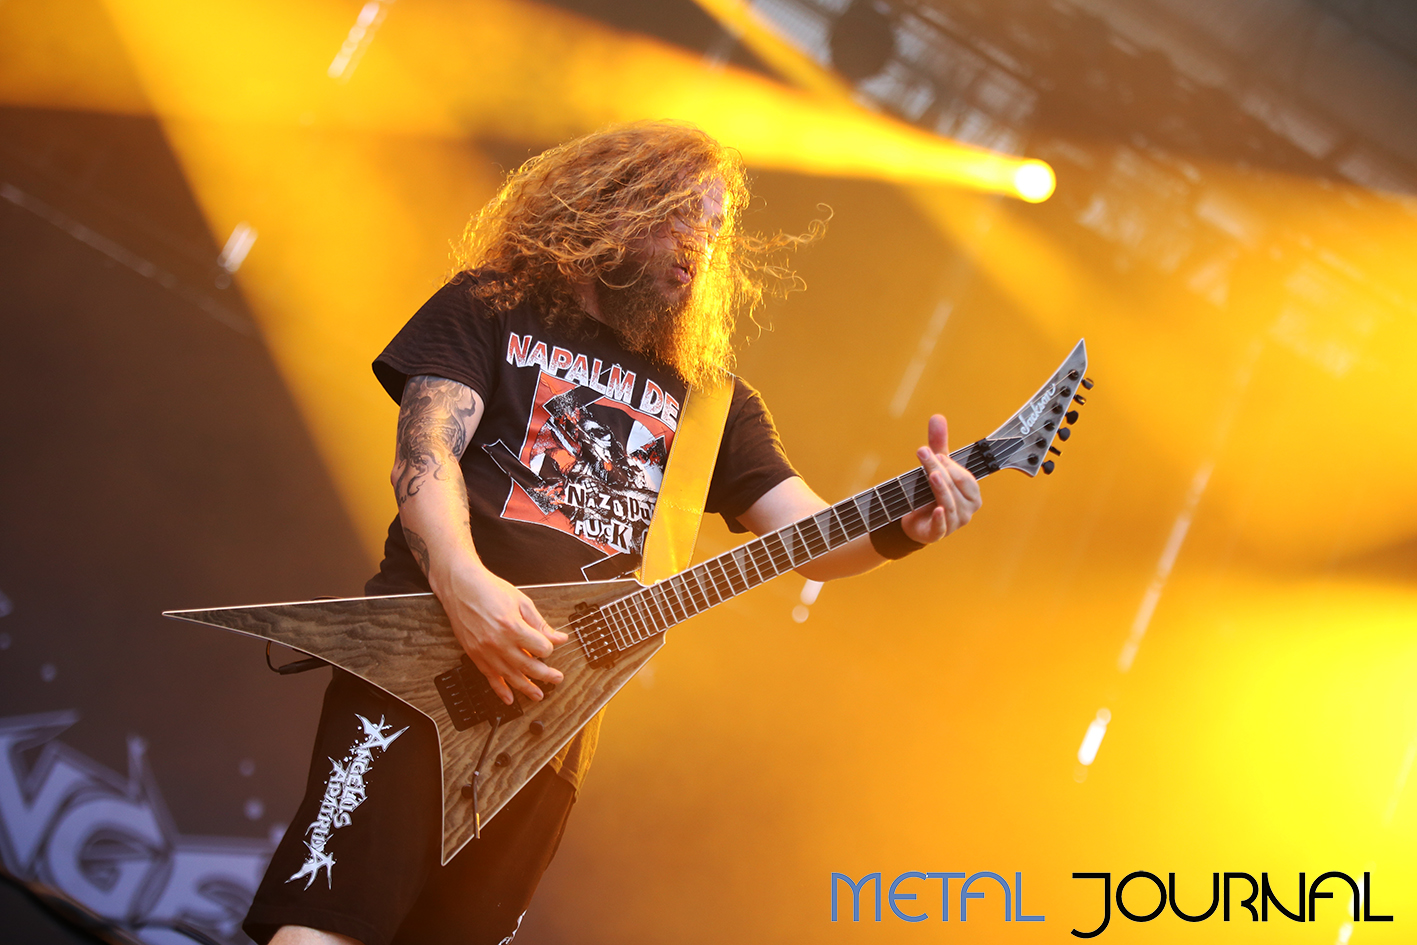 angelus apatrida - metal journal rock fest barcelona 2019 pic 1